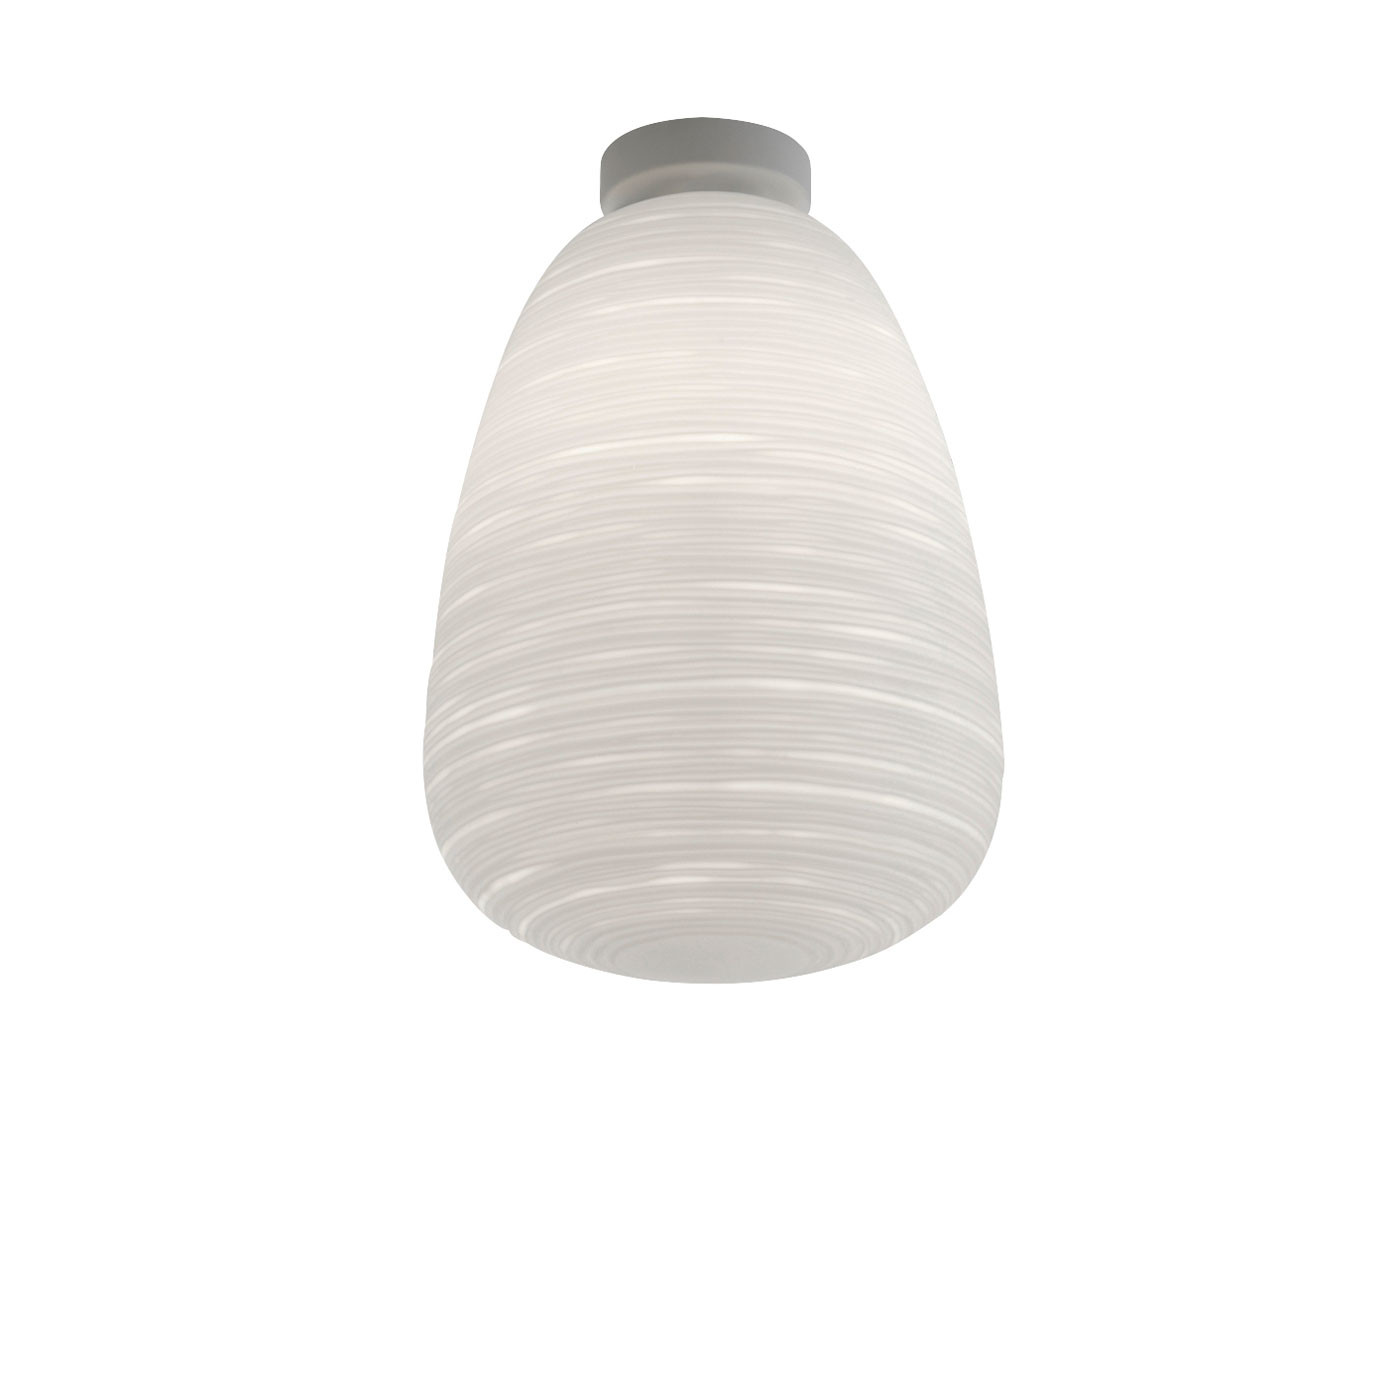 Foscarini Rituals 1 Soffitto